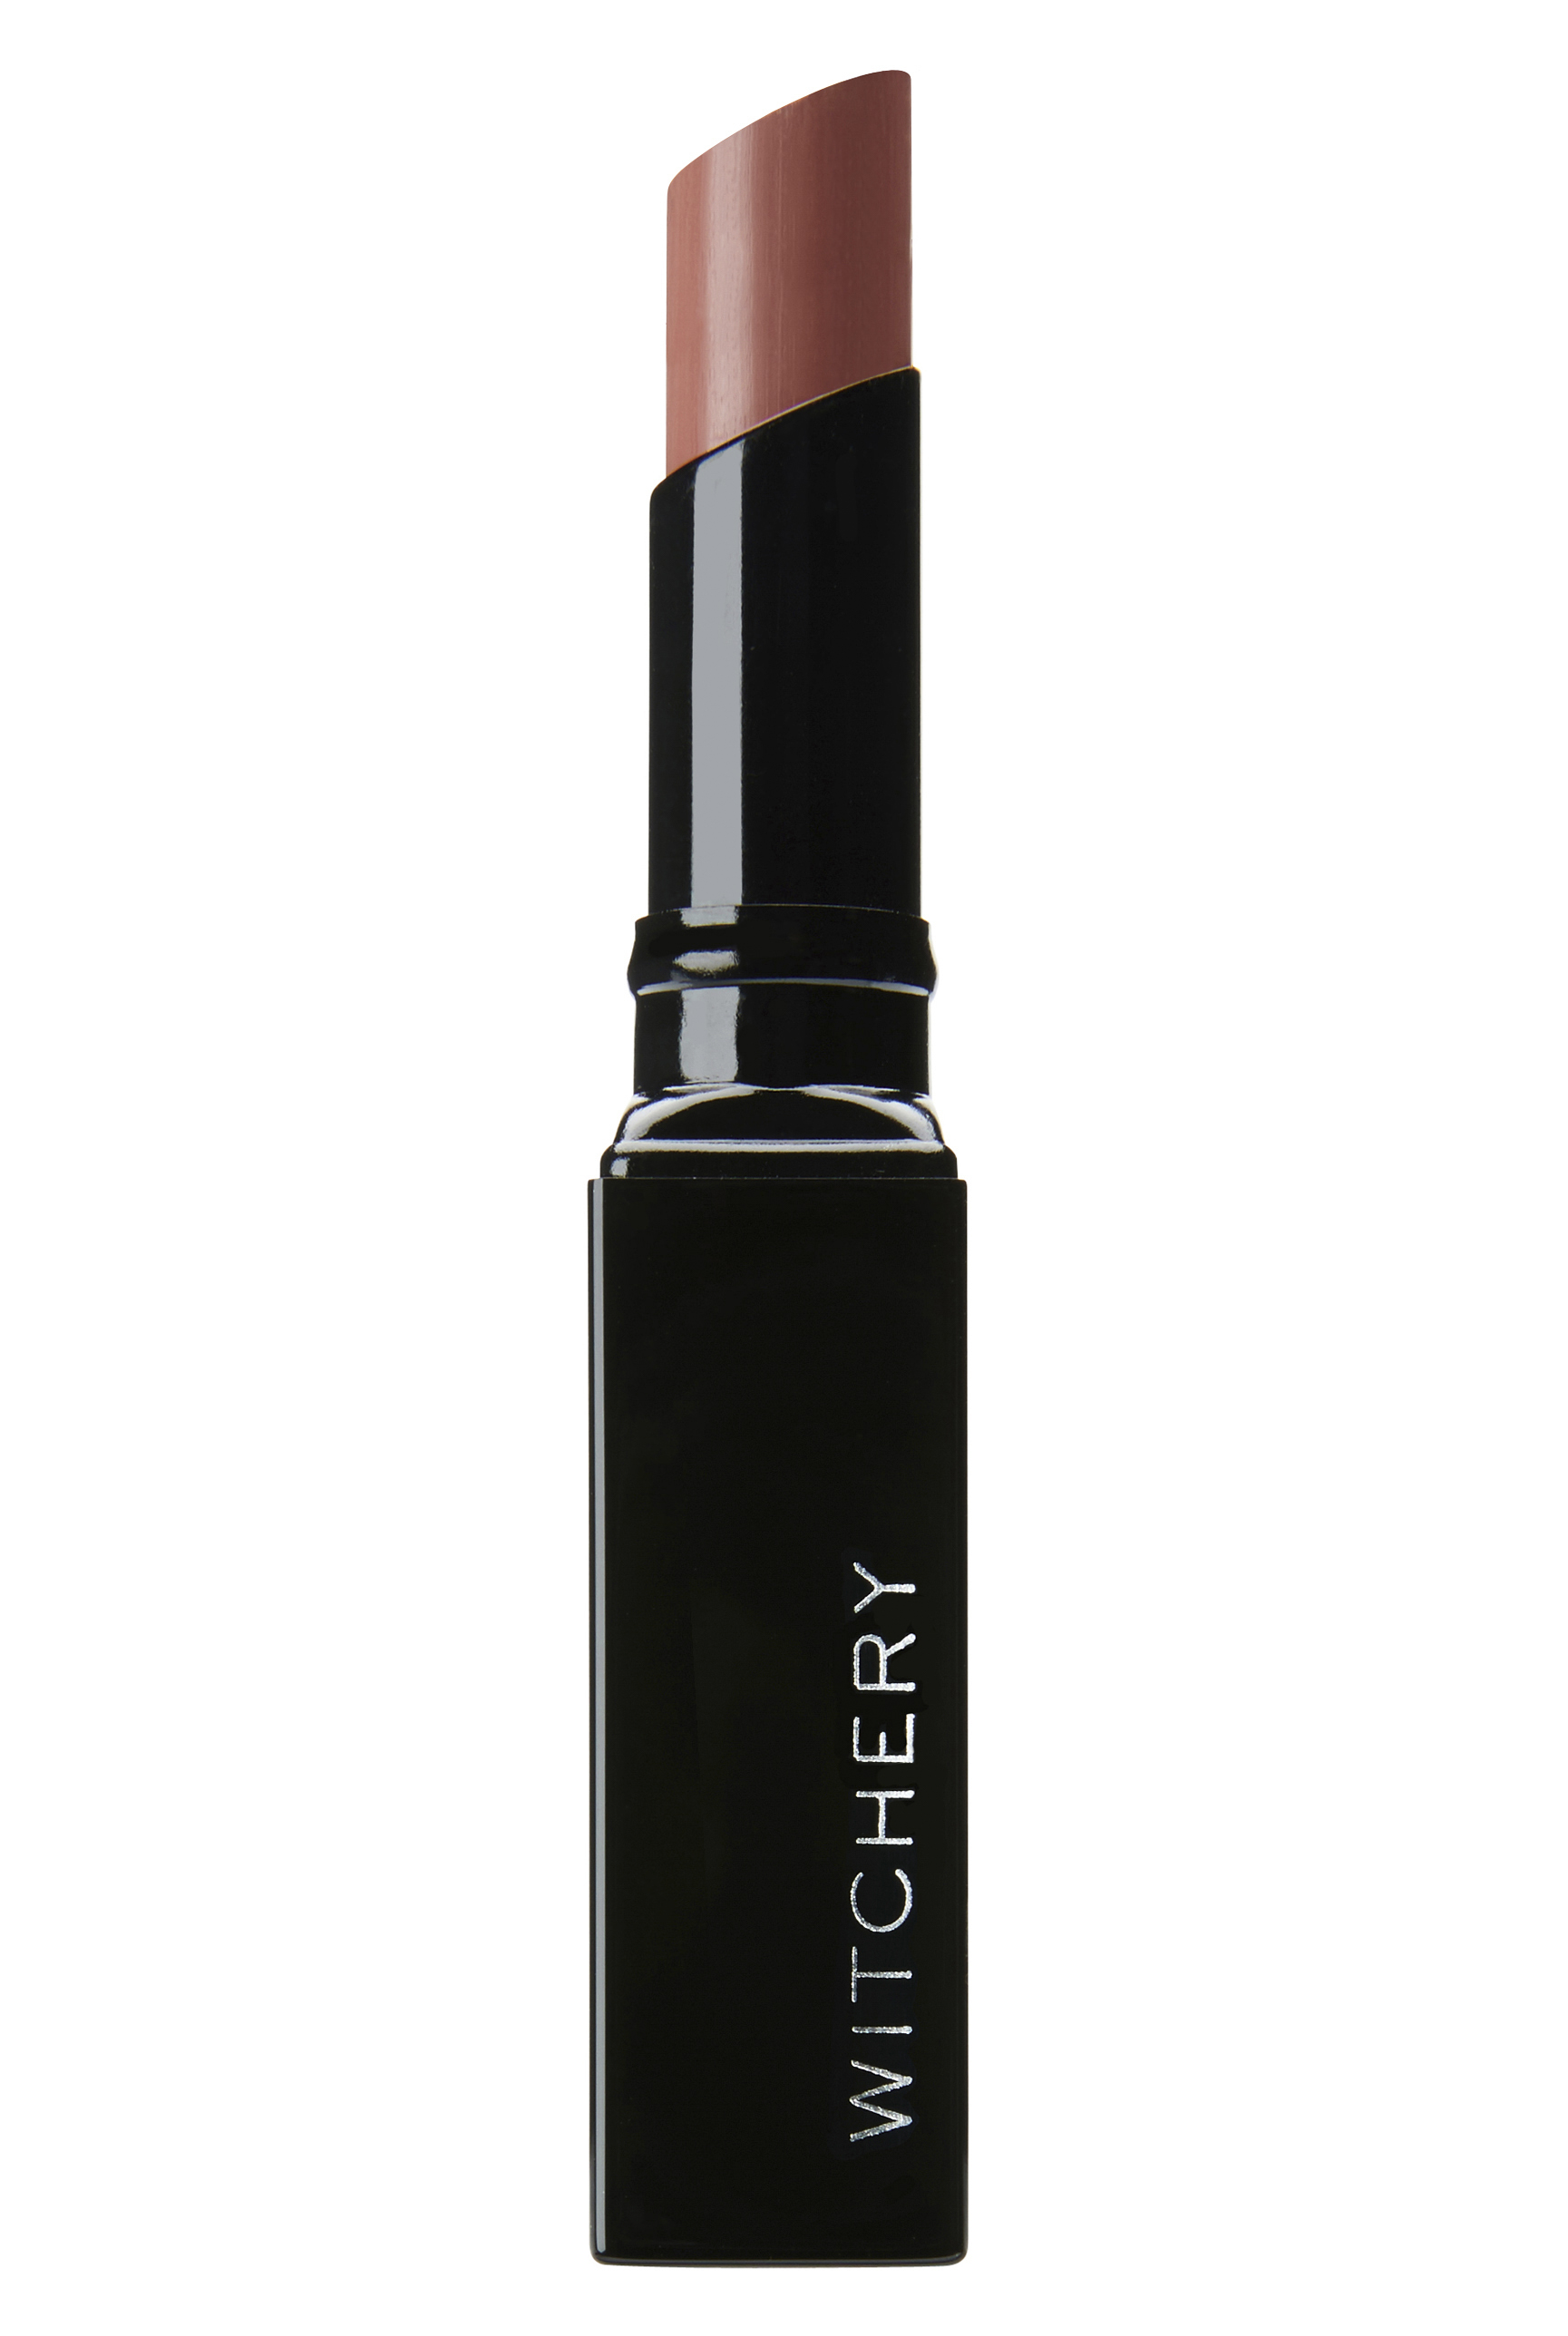 60197343_witchery-beauty-matte-lipstick-in-barley-rrp18-90